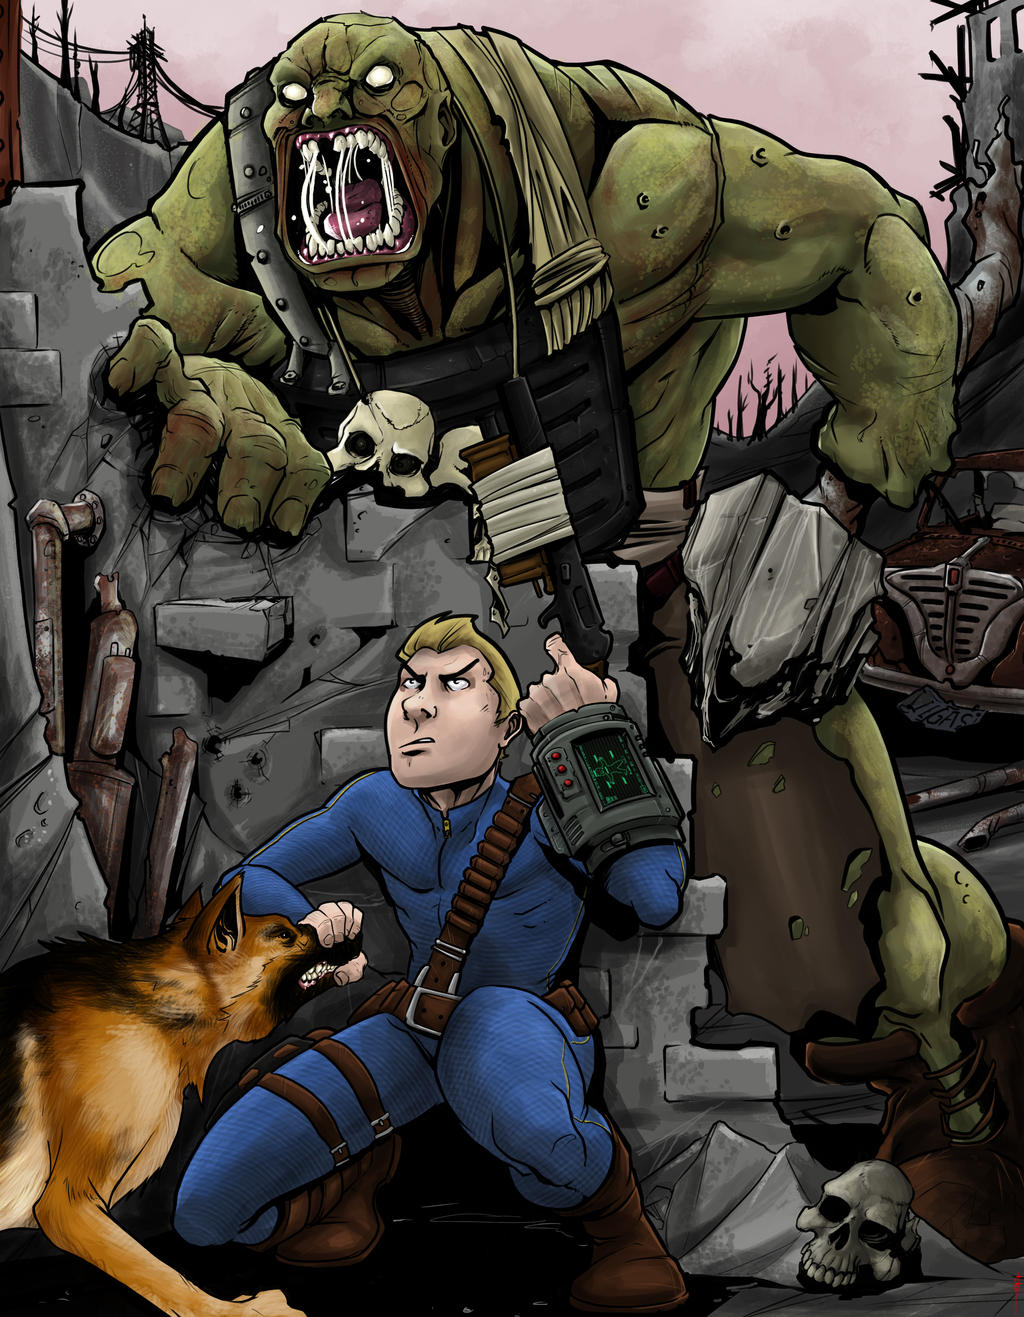 Fallout 4 Finished!